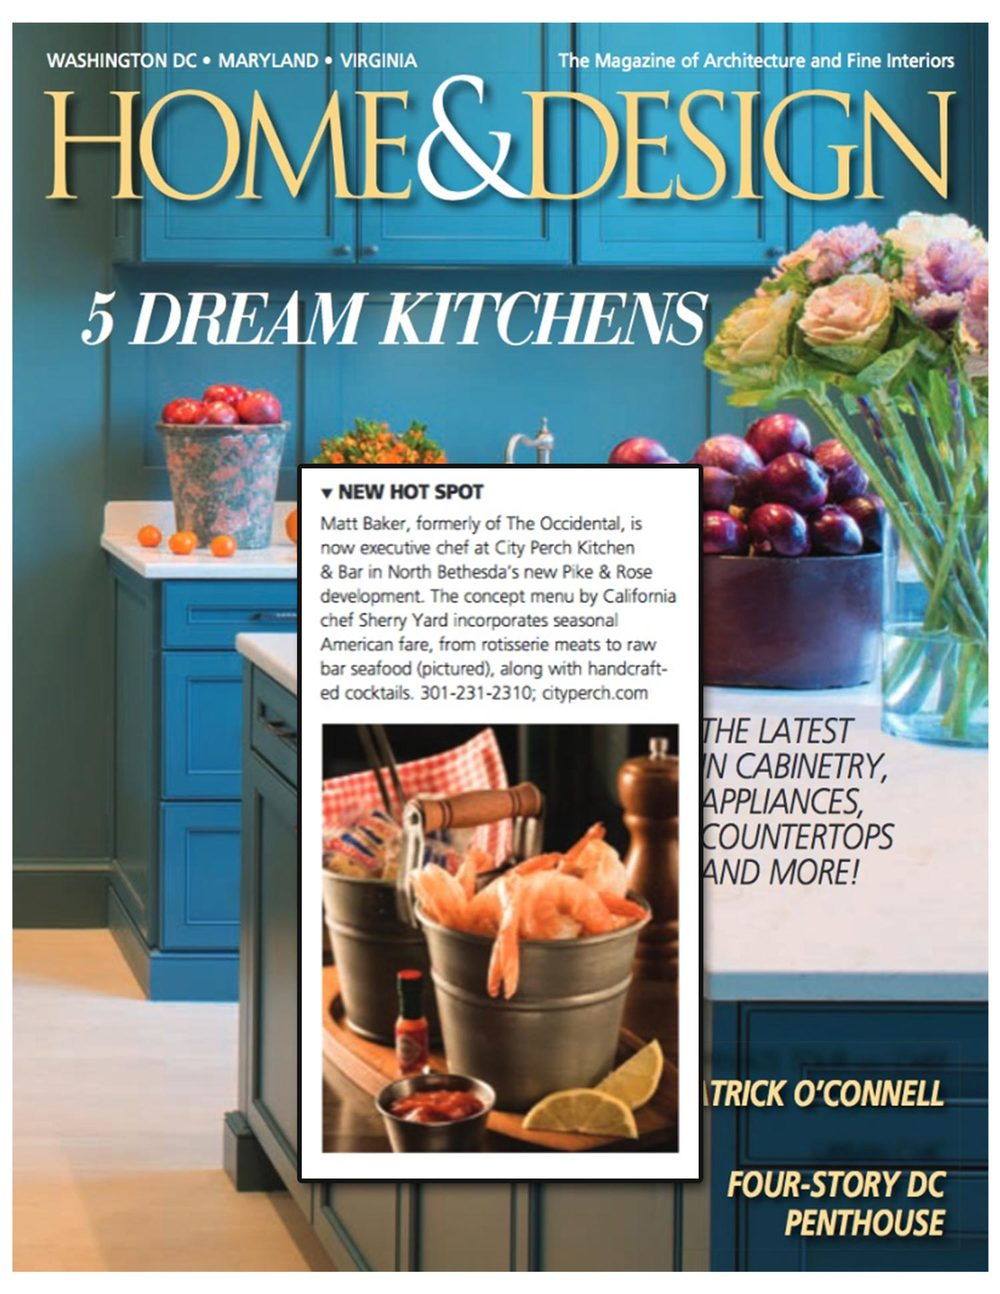 IPIC_CITYPERCH_Press_Home&Design_010115.jpg